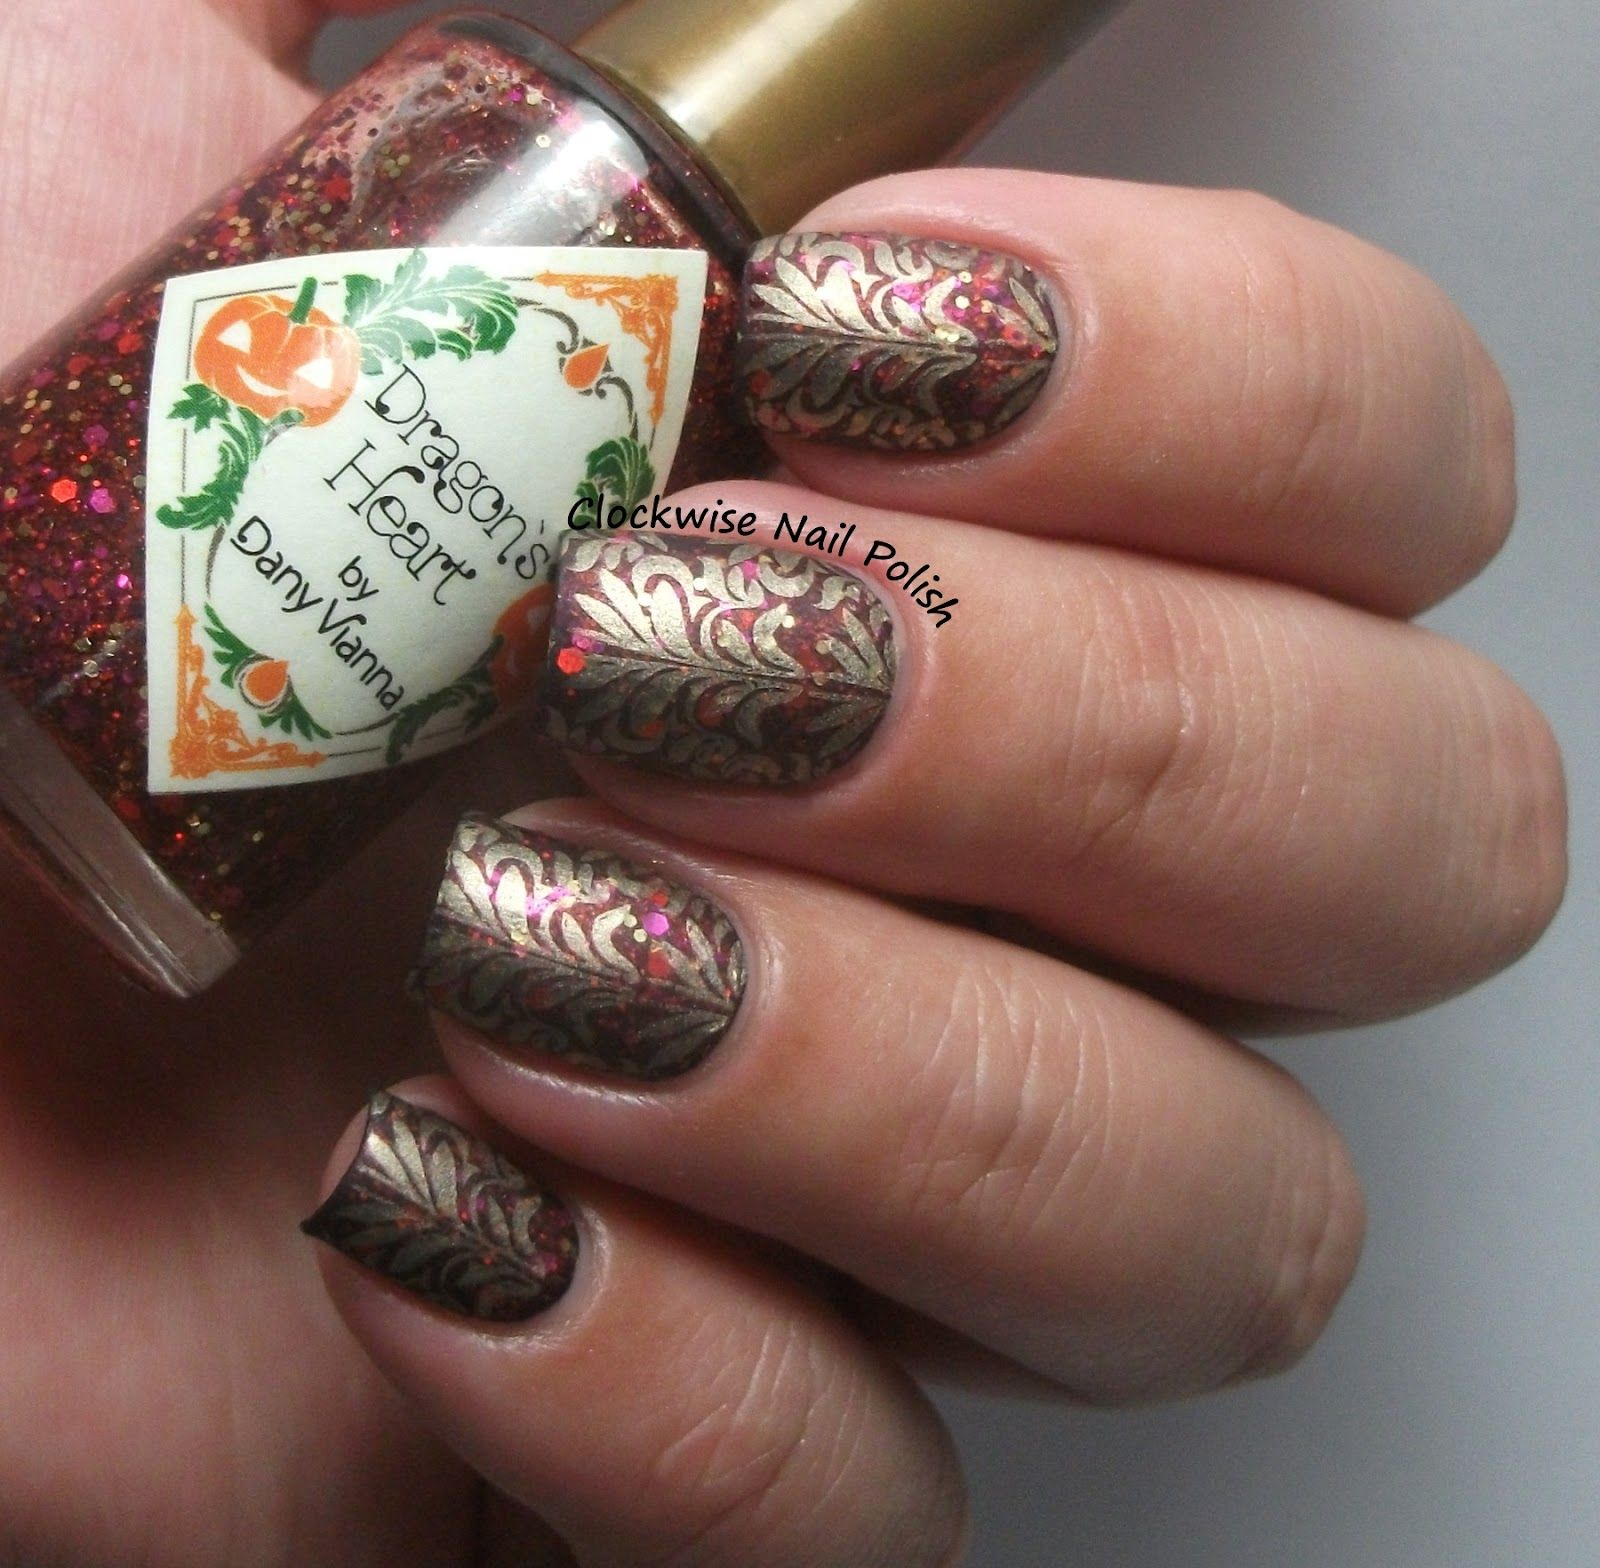 The Clockwise Nail Polish: Born Pretty BP-L007 Stamping Plate Review